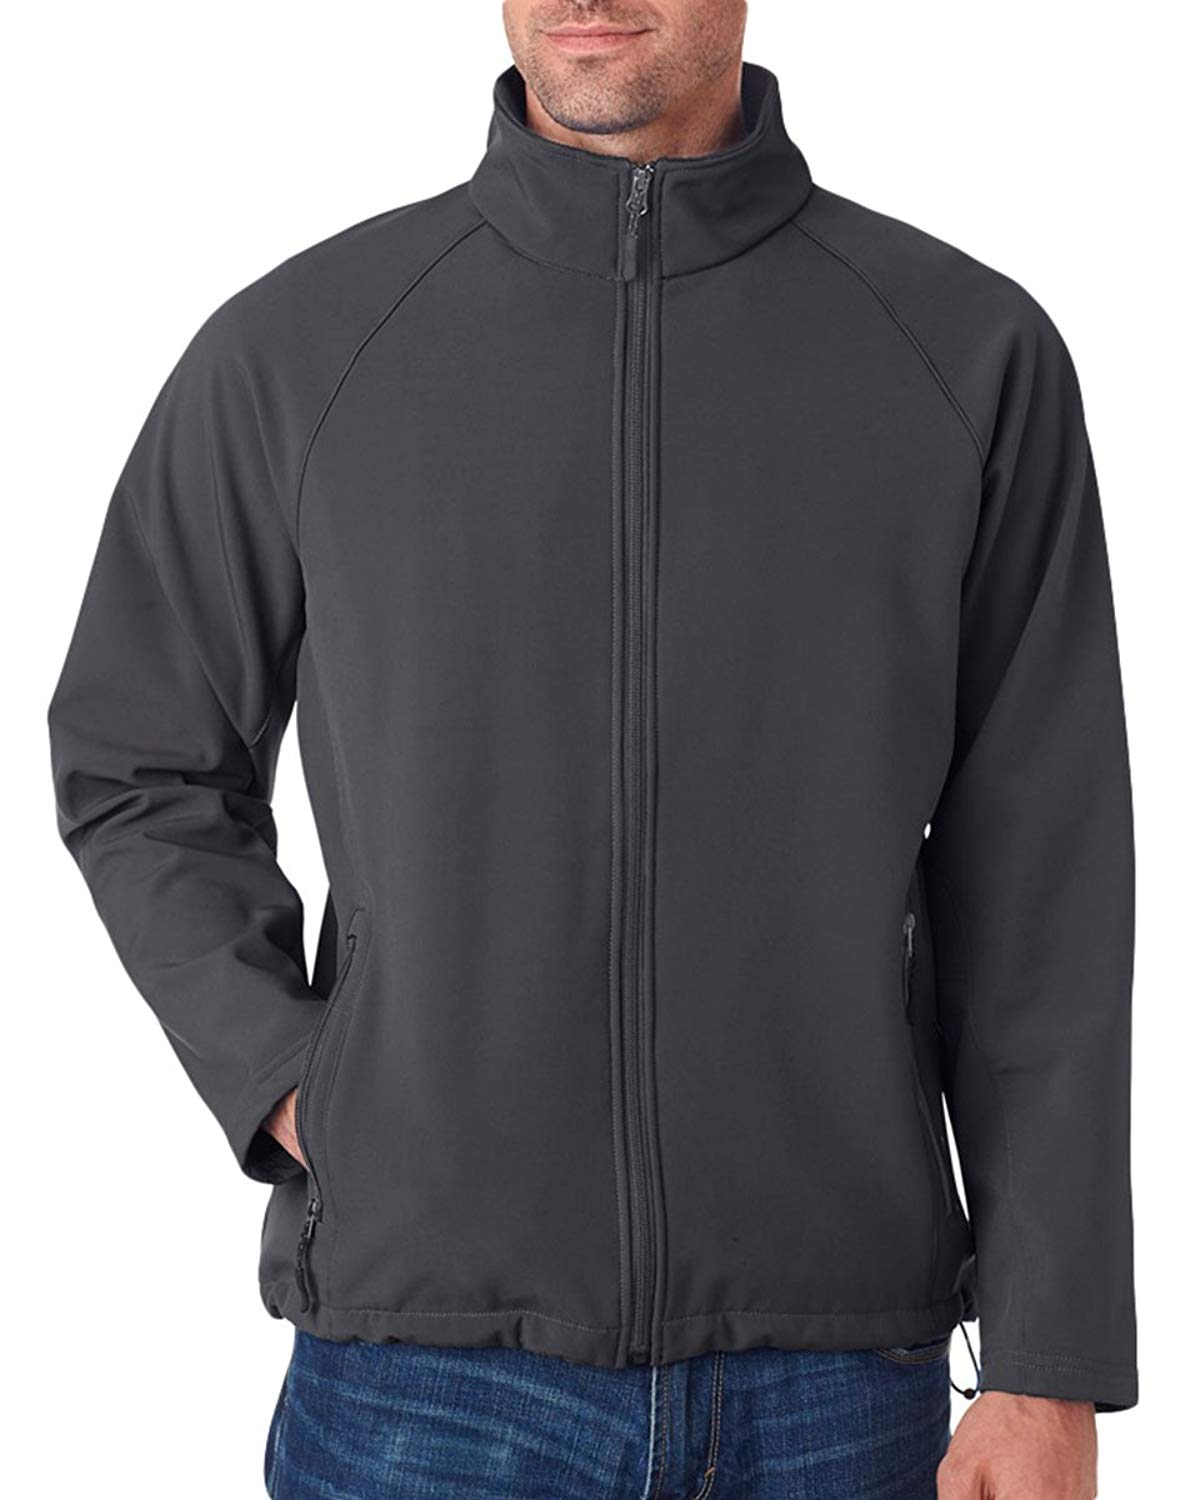 UltraClub Men's Wind Resistant Bottom Hem Soft Shell Zipper Jacket